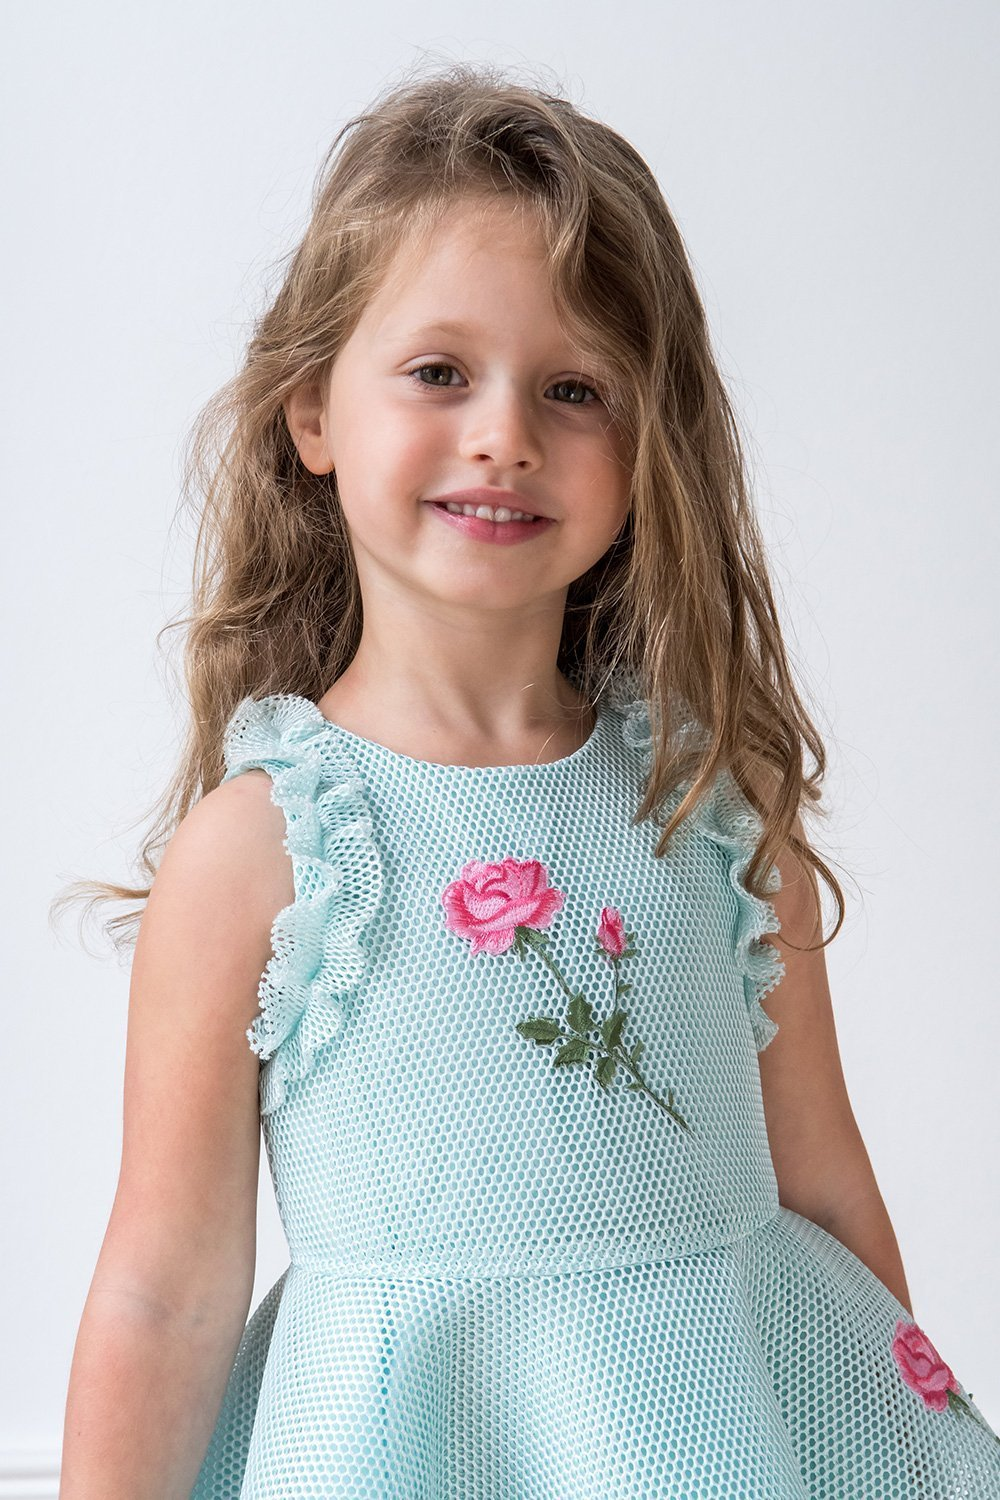 Türkis-Rosa-Rosen-Party-Kleid - Kleidung Davids Charles Childrens